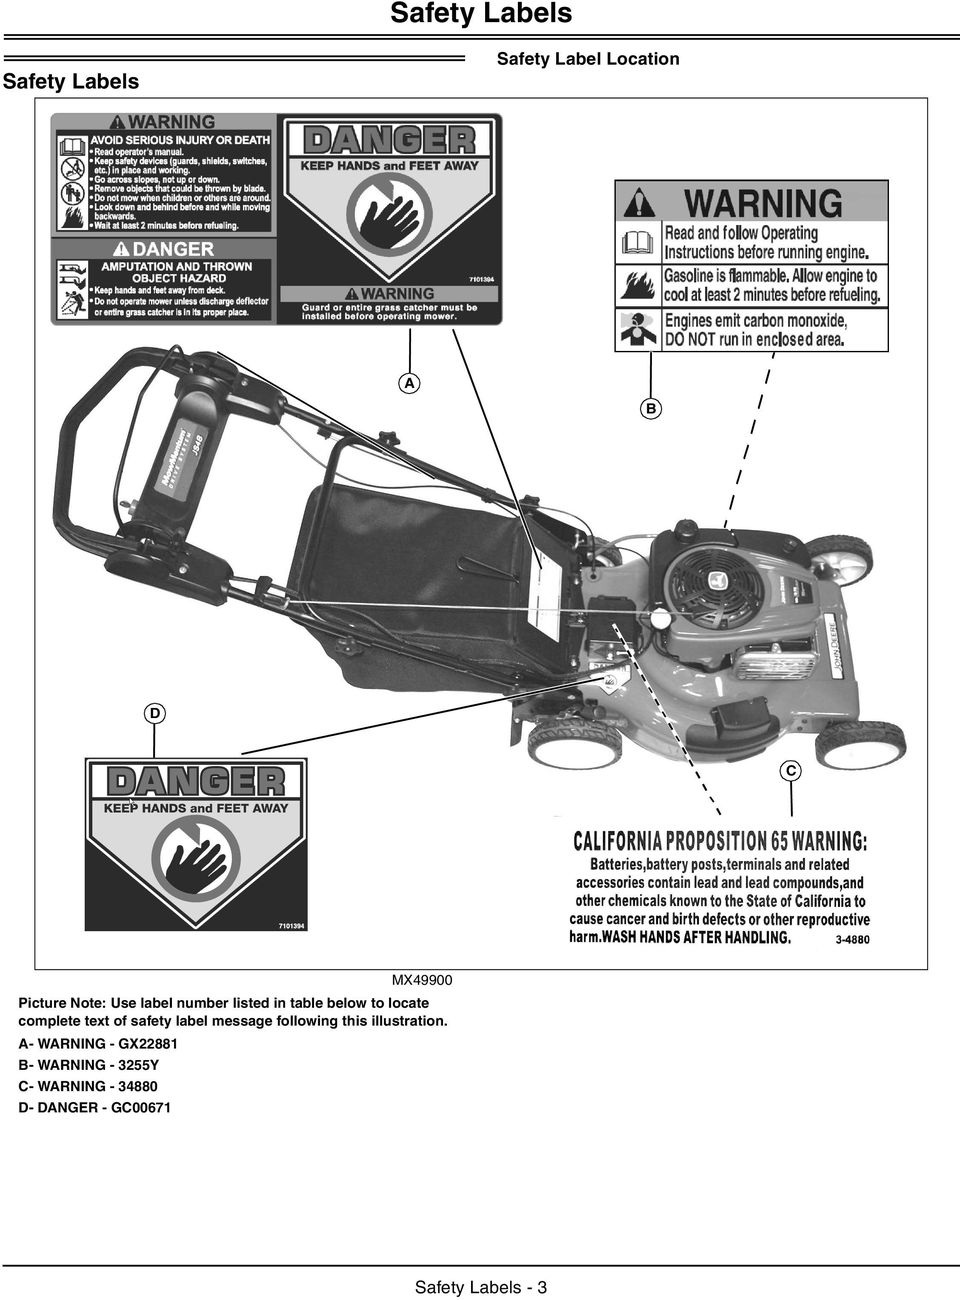 of safety label message following this illustration.